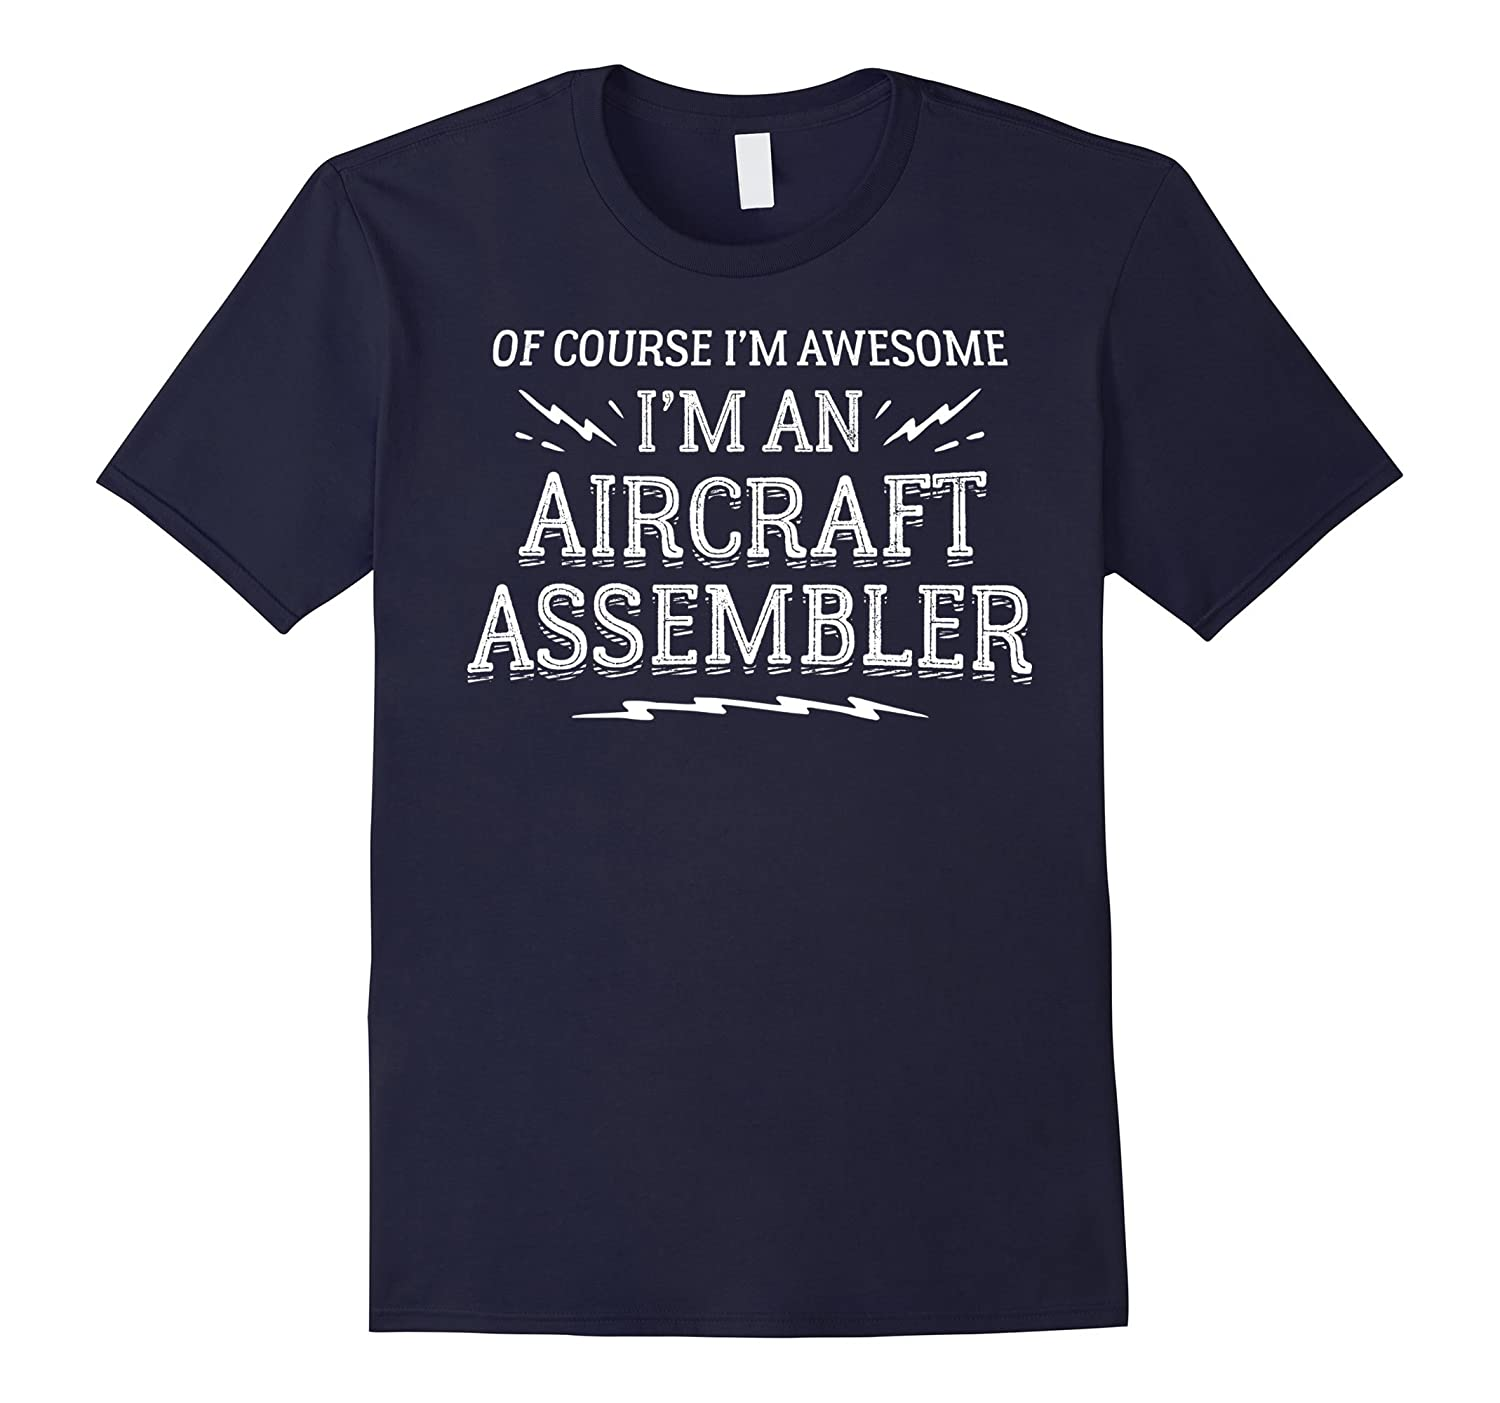 Aircraft Assembler Work T-Shirt - Of Course Im Awesome-TJ